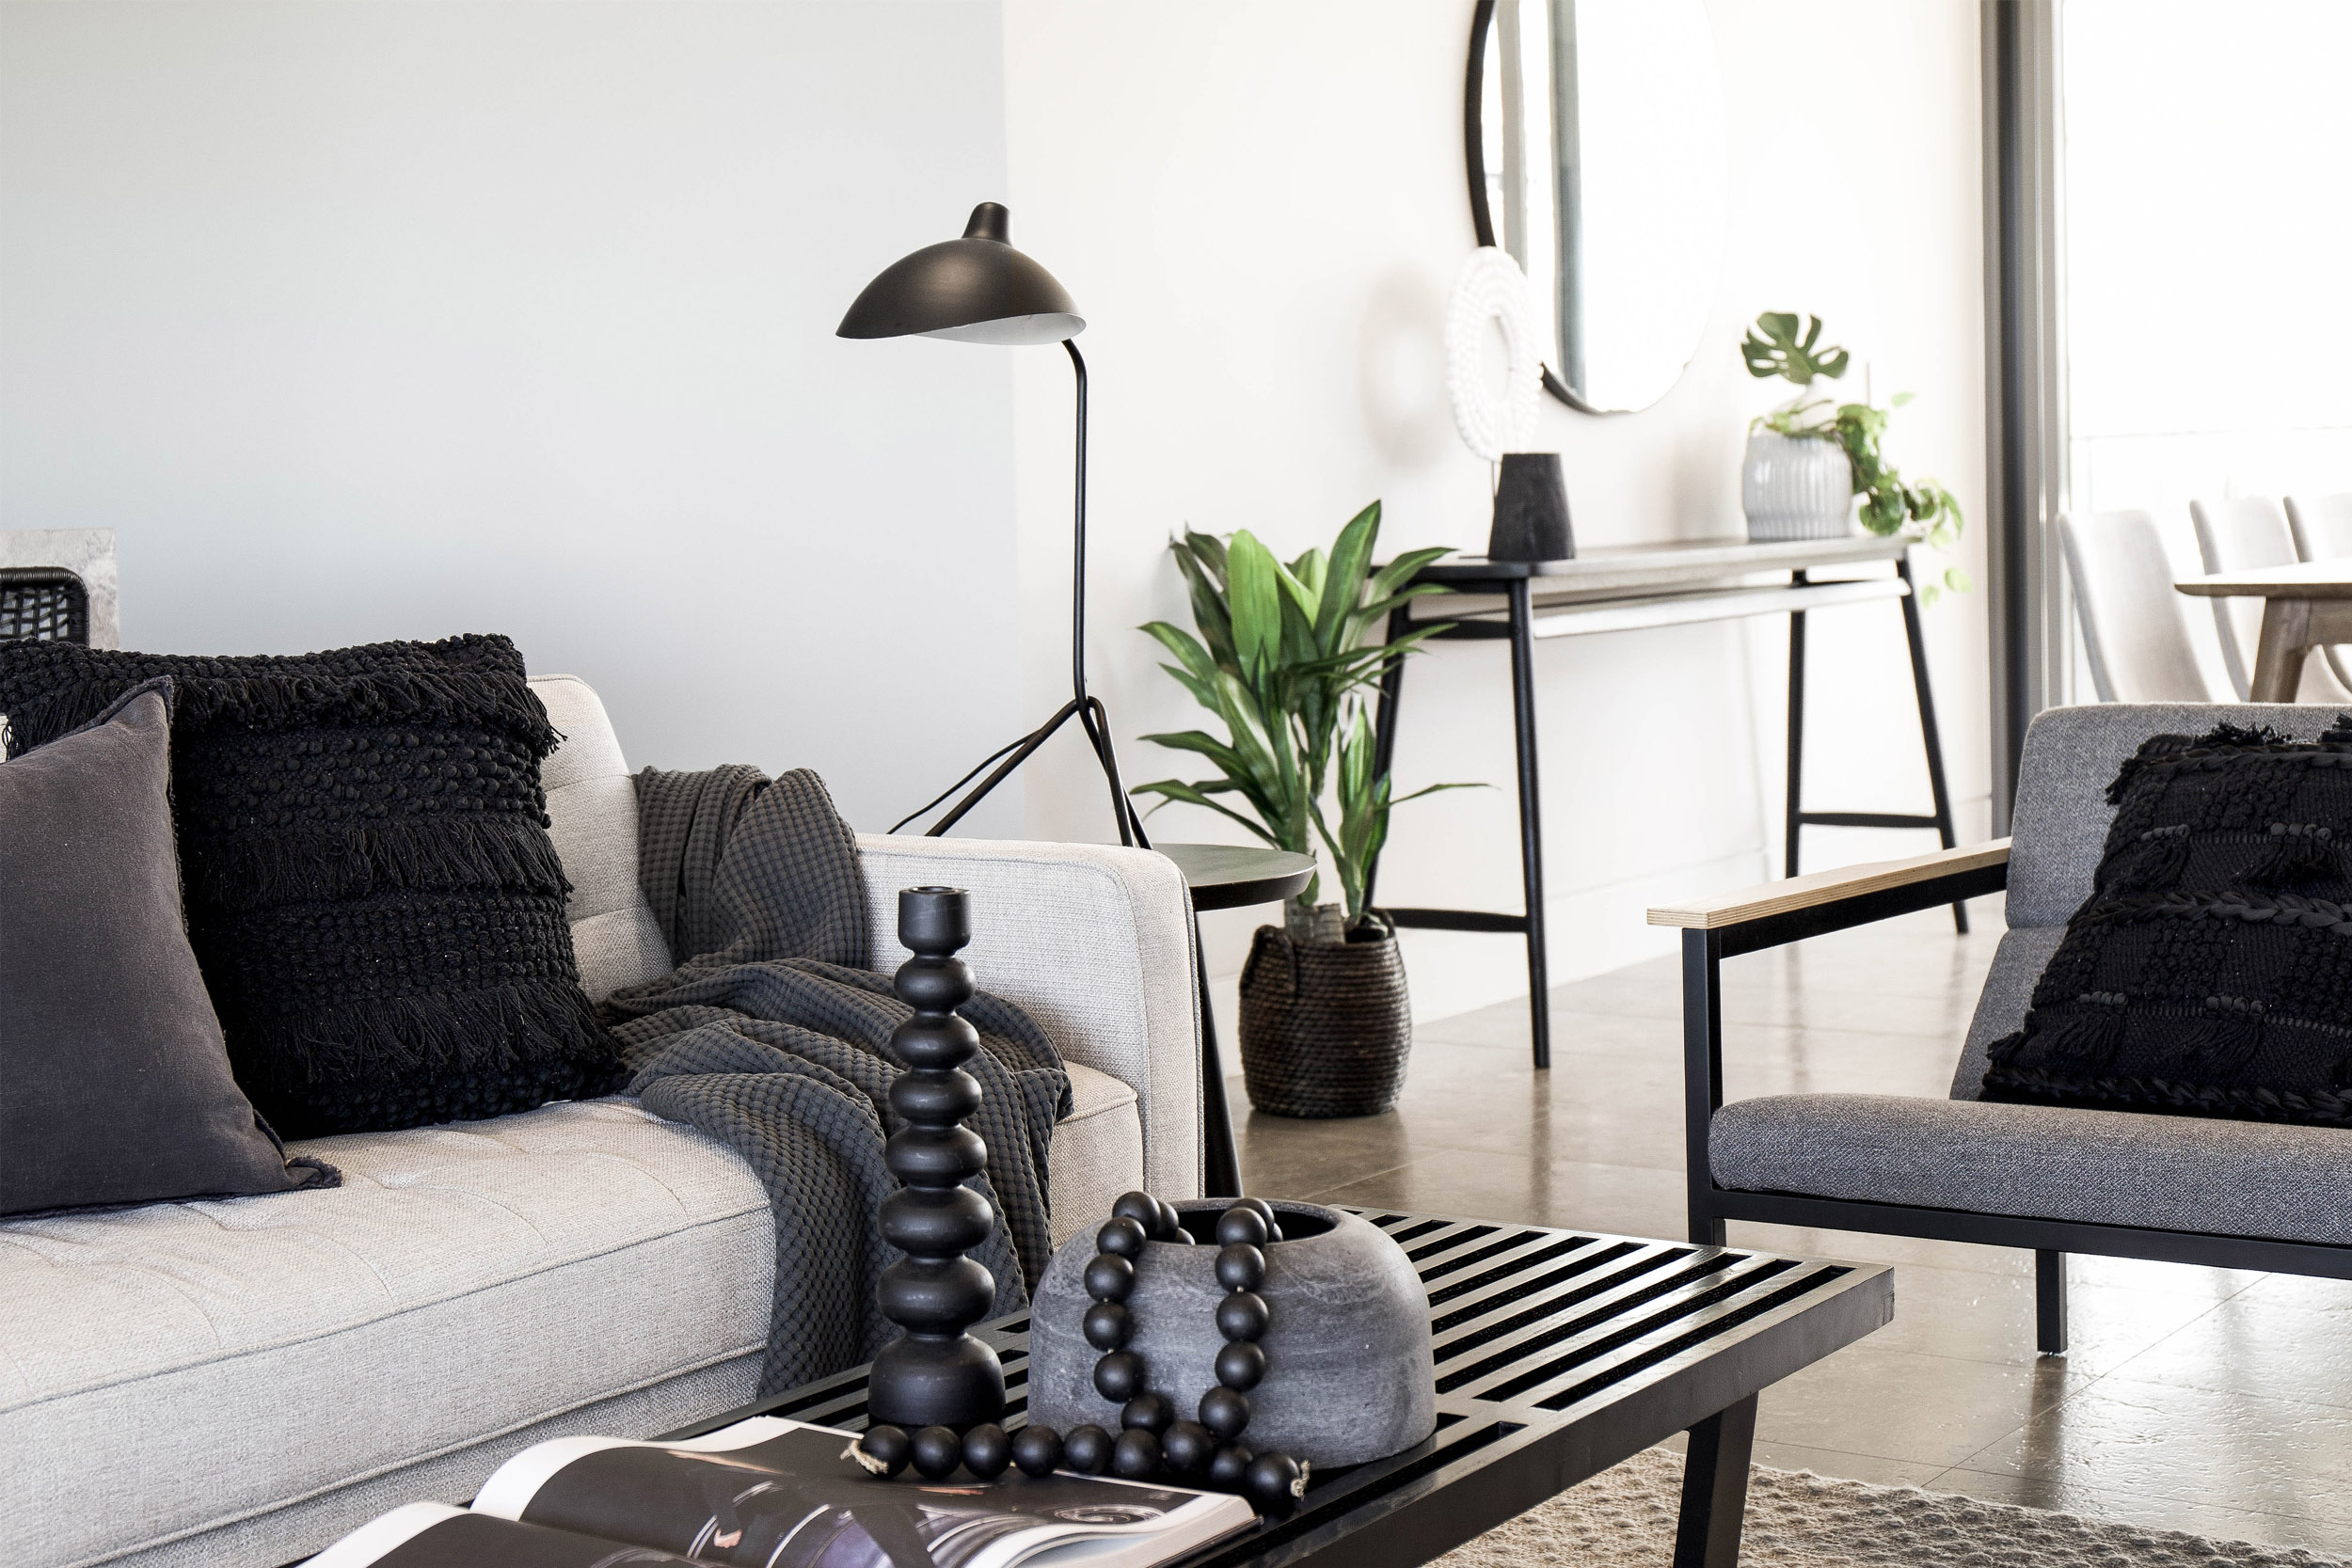 Bowerbird Black Premium Offering Living Room | Property Styling